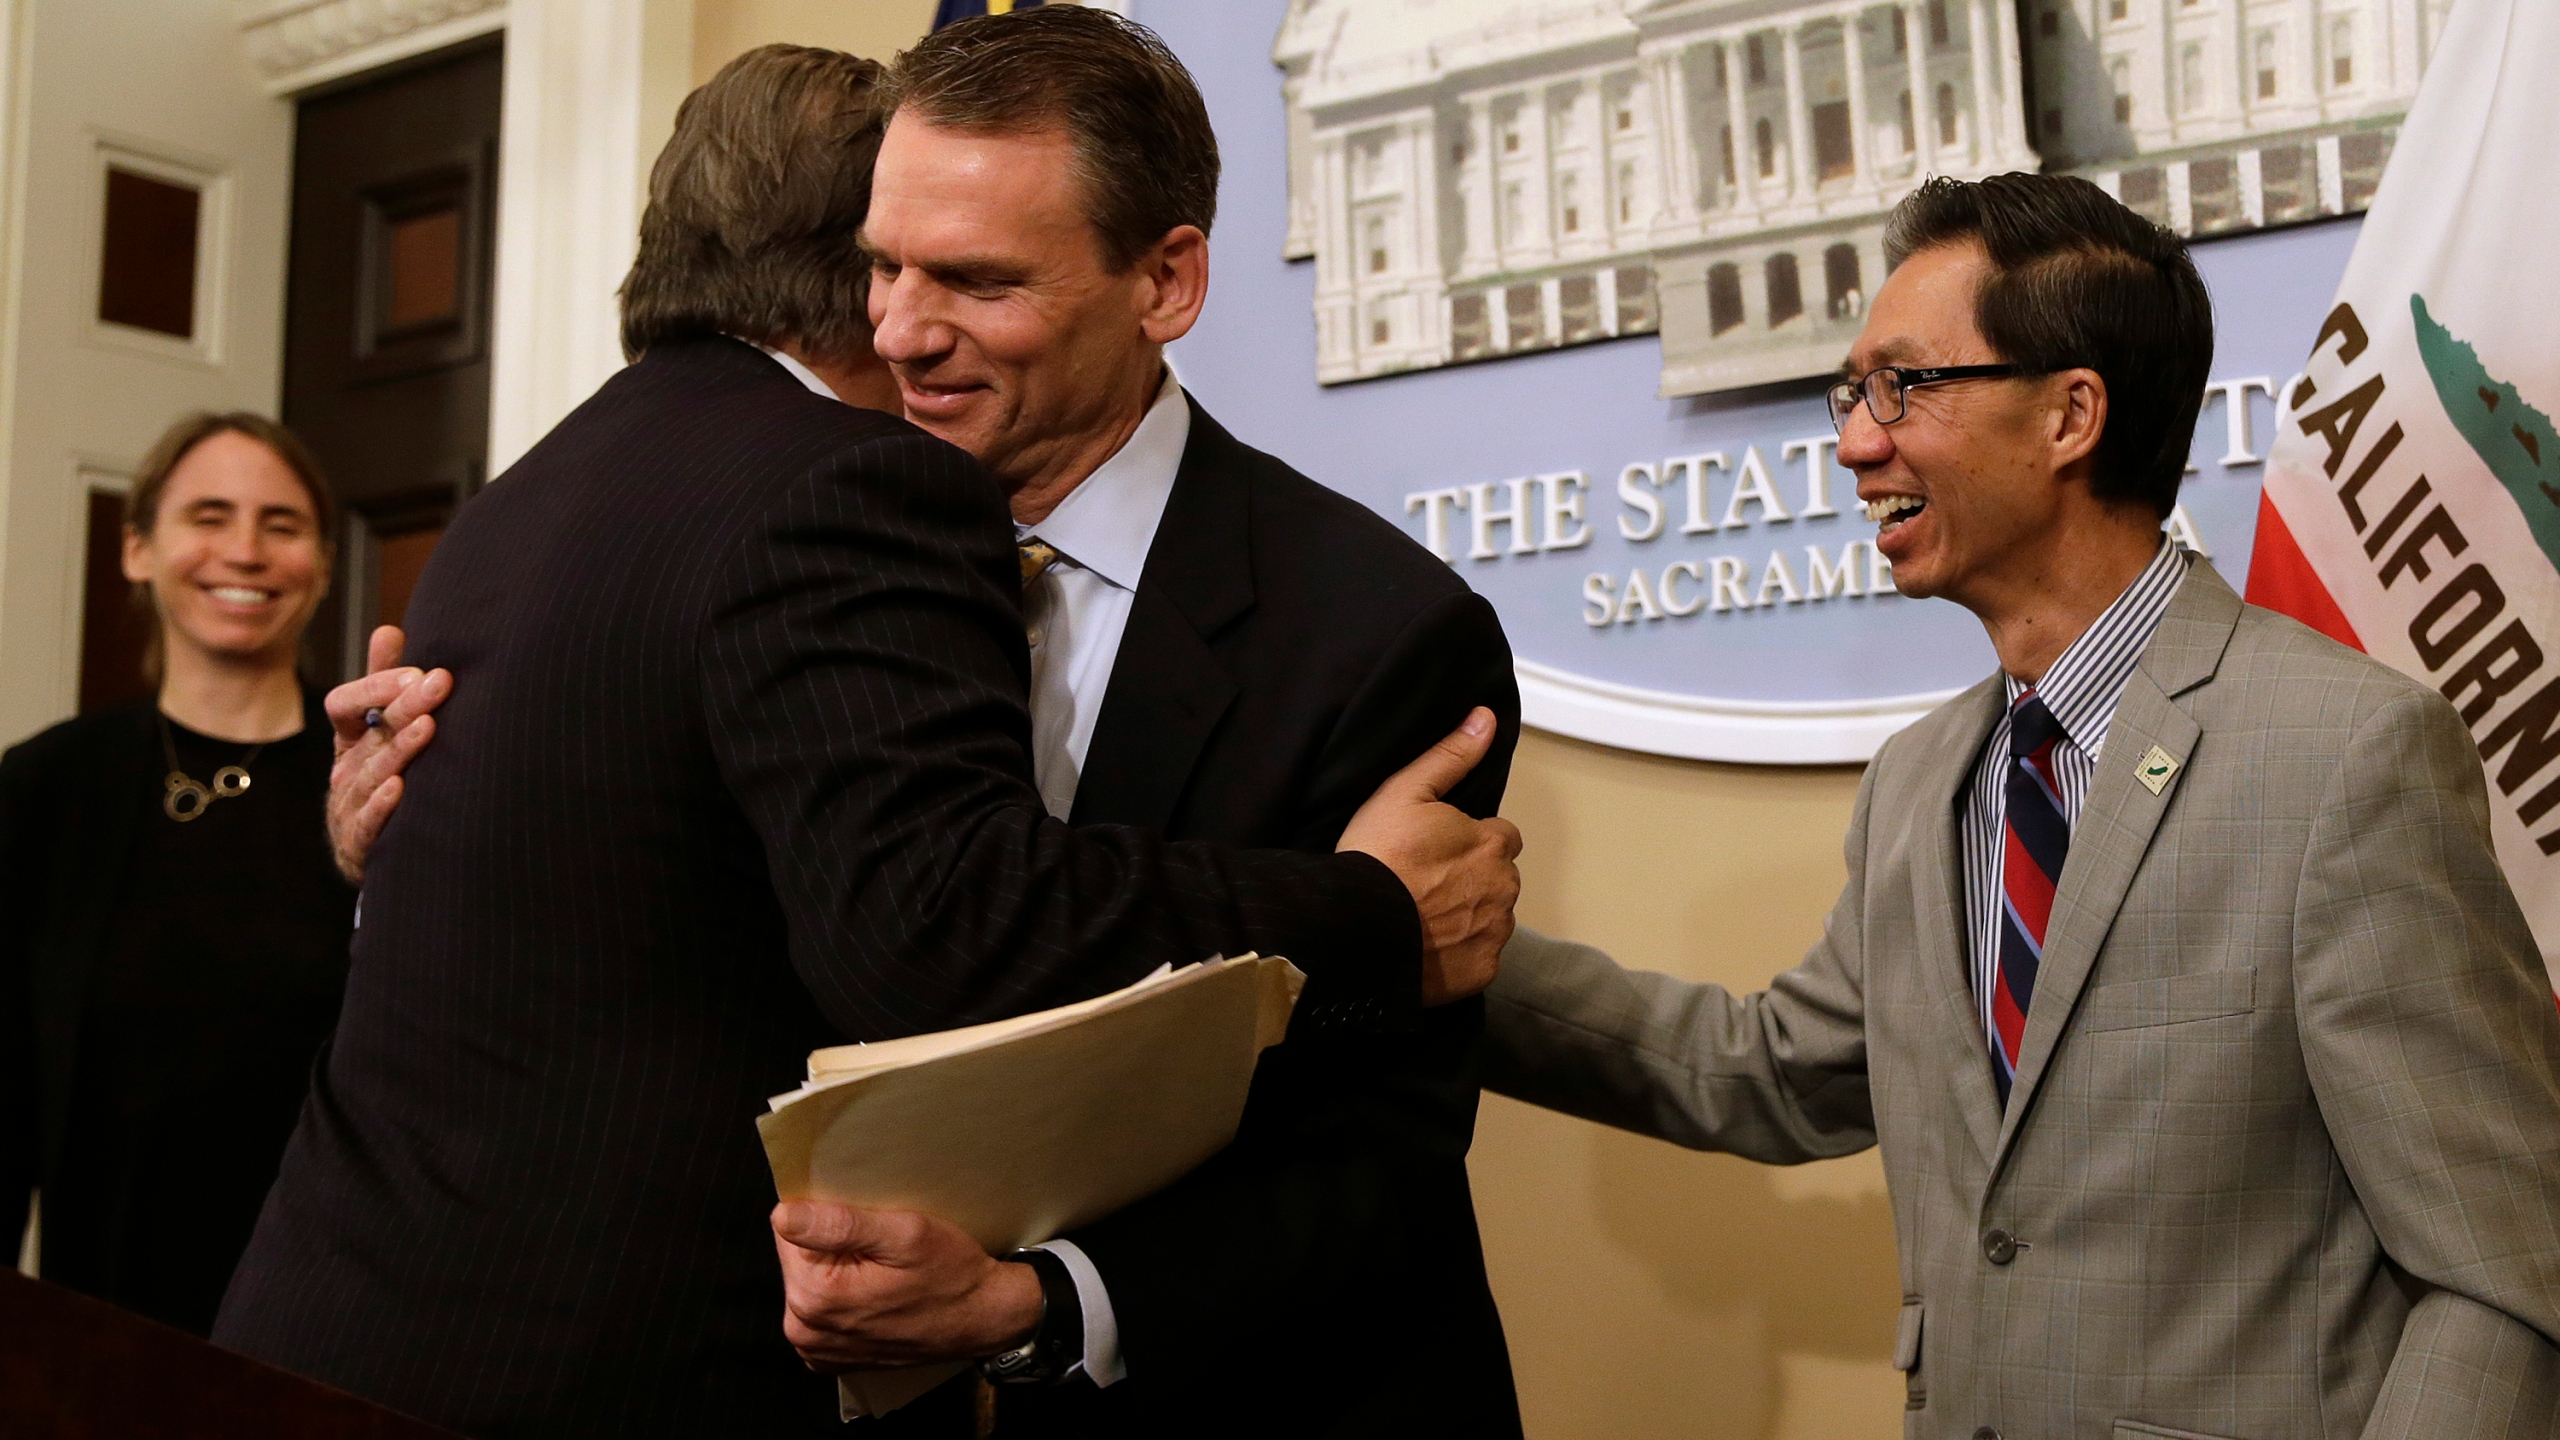 In this June 28, 2018, file photo, state Sen. Bob Hertzberg, D-Van Nuys, left, and Assemblyman Ed Chau, D-Arcadia, right, celebrate with Alastair Mactaggart, center, after the Legislature approved their data privacy bill in Sacramento. (AP / Rich Pedroncelli)